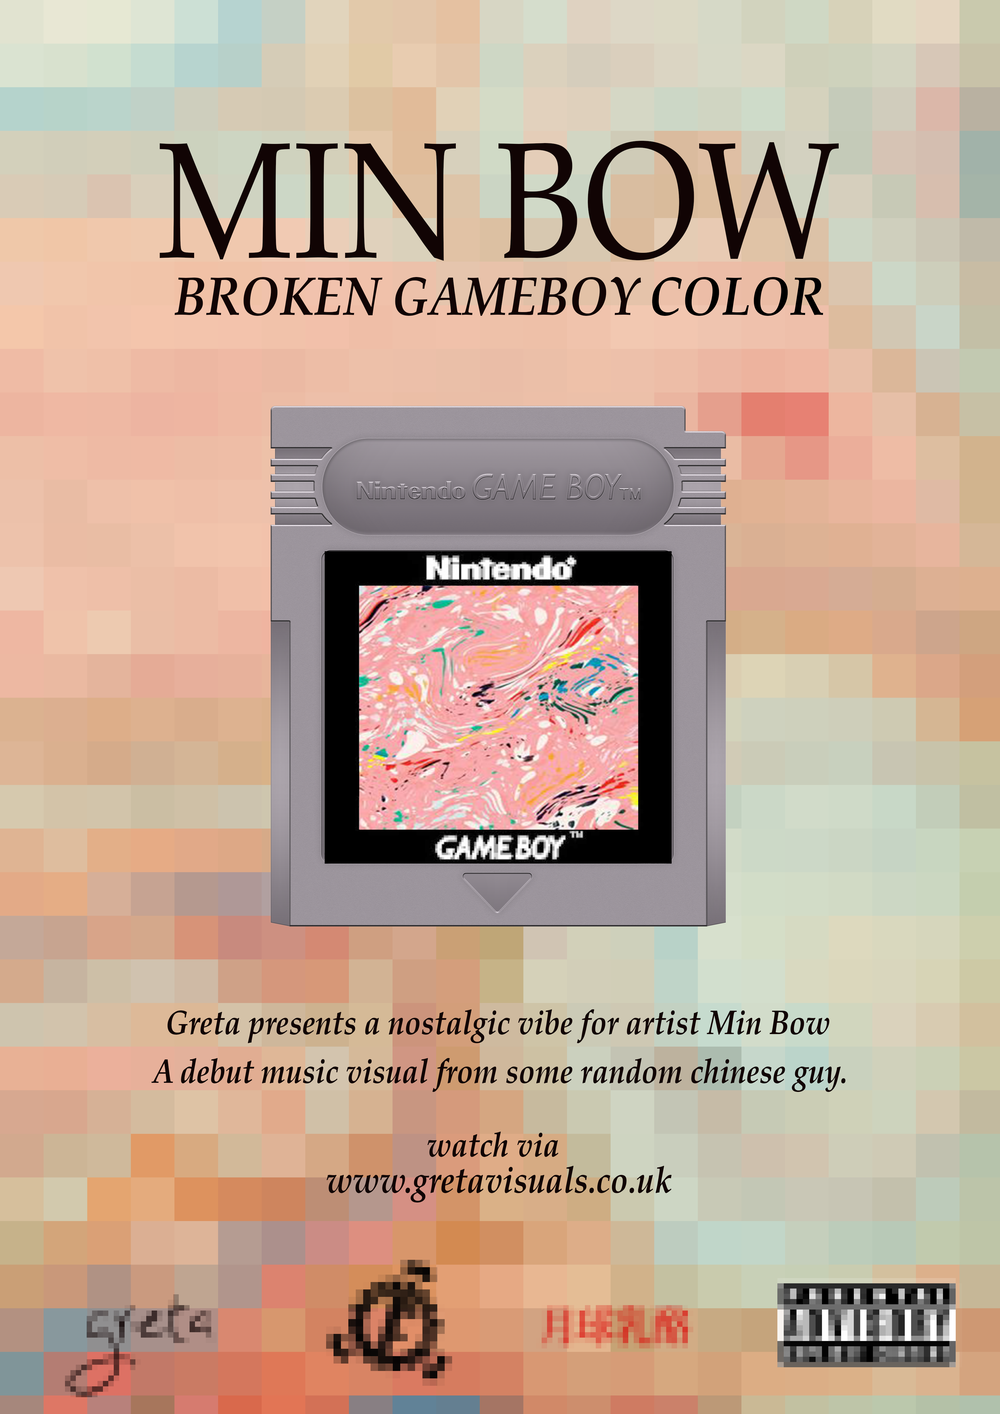 'Broken Gameboy Color' Digital Poster. (The Factory X Half Moon Half Cheese)    Digital Poster for music visual by Min Bow. A beat-maker/visual artist residing from South London. Aims to promote the self directed piece - Broken Gameboy Color. Watch the visual  right here ! (Music Visual)